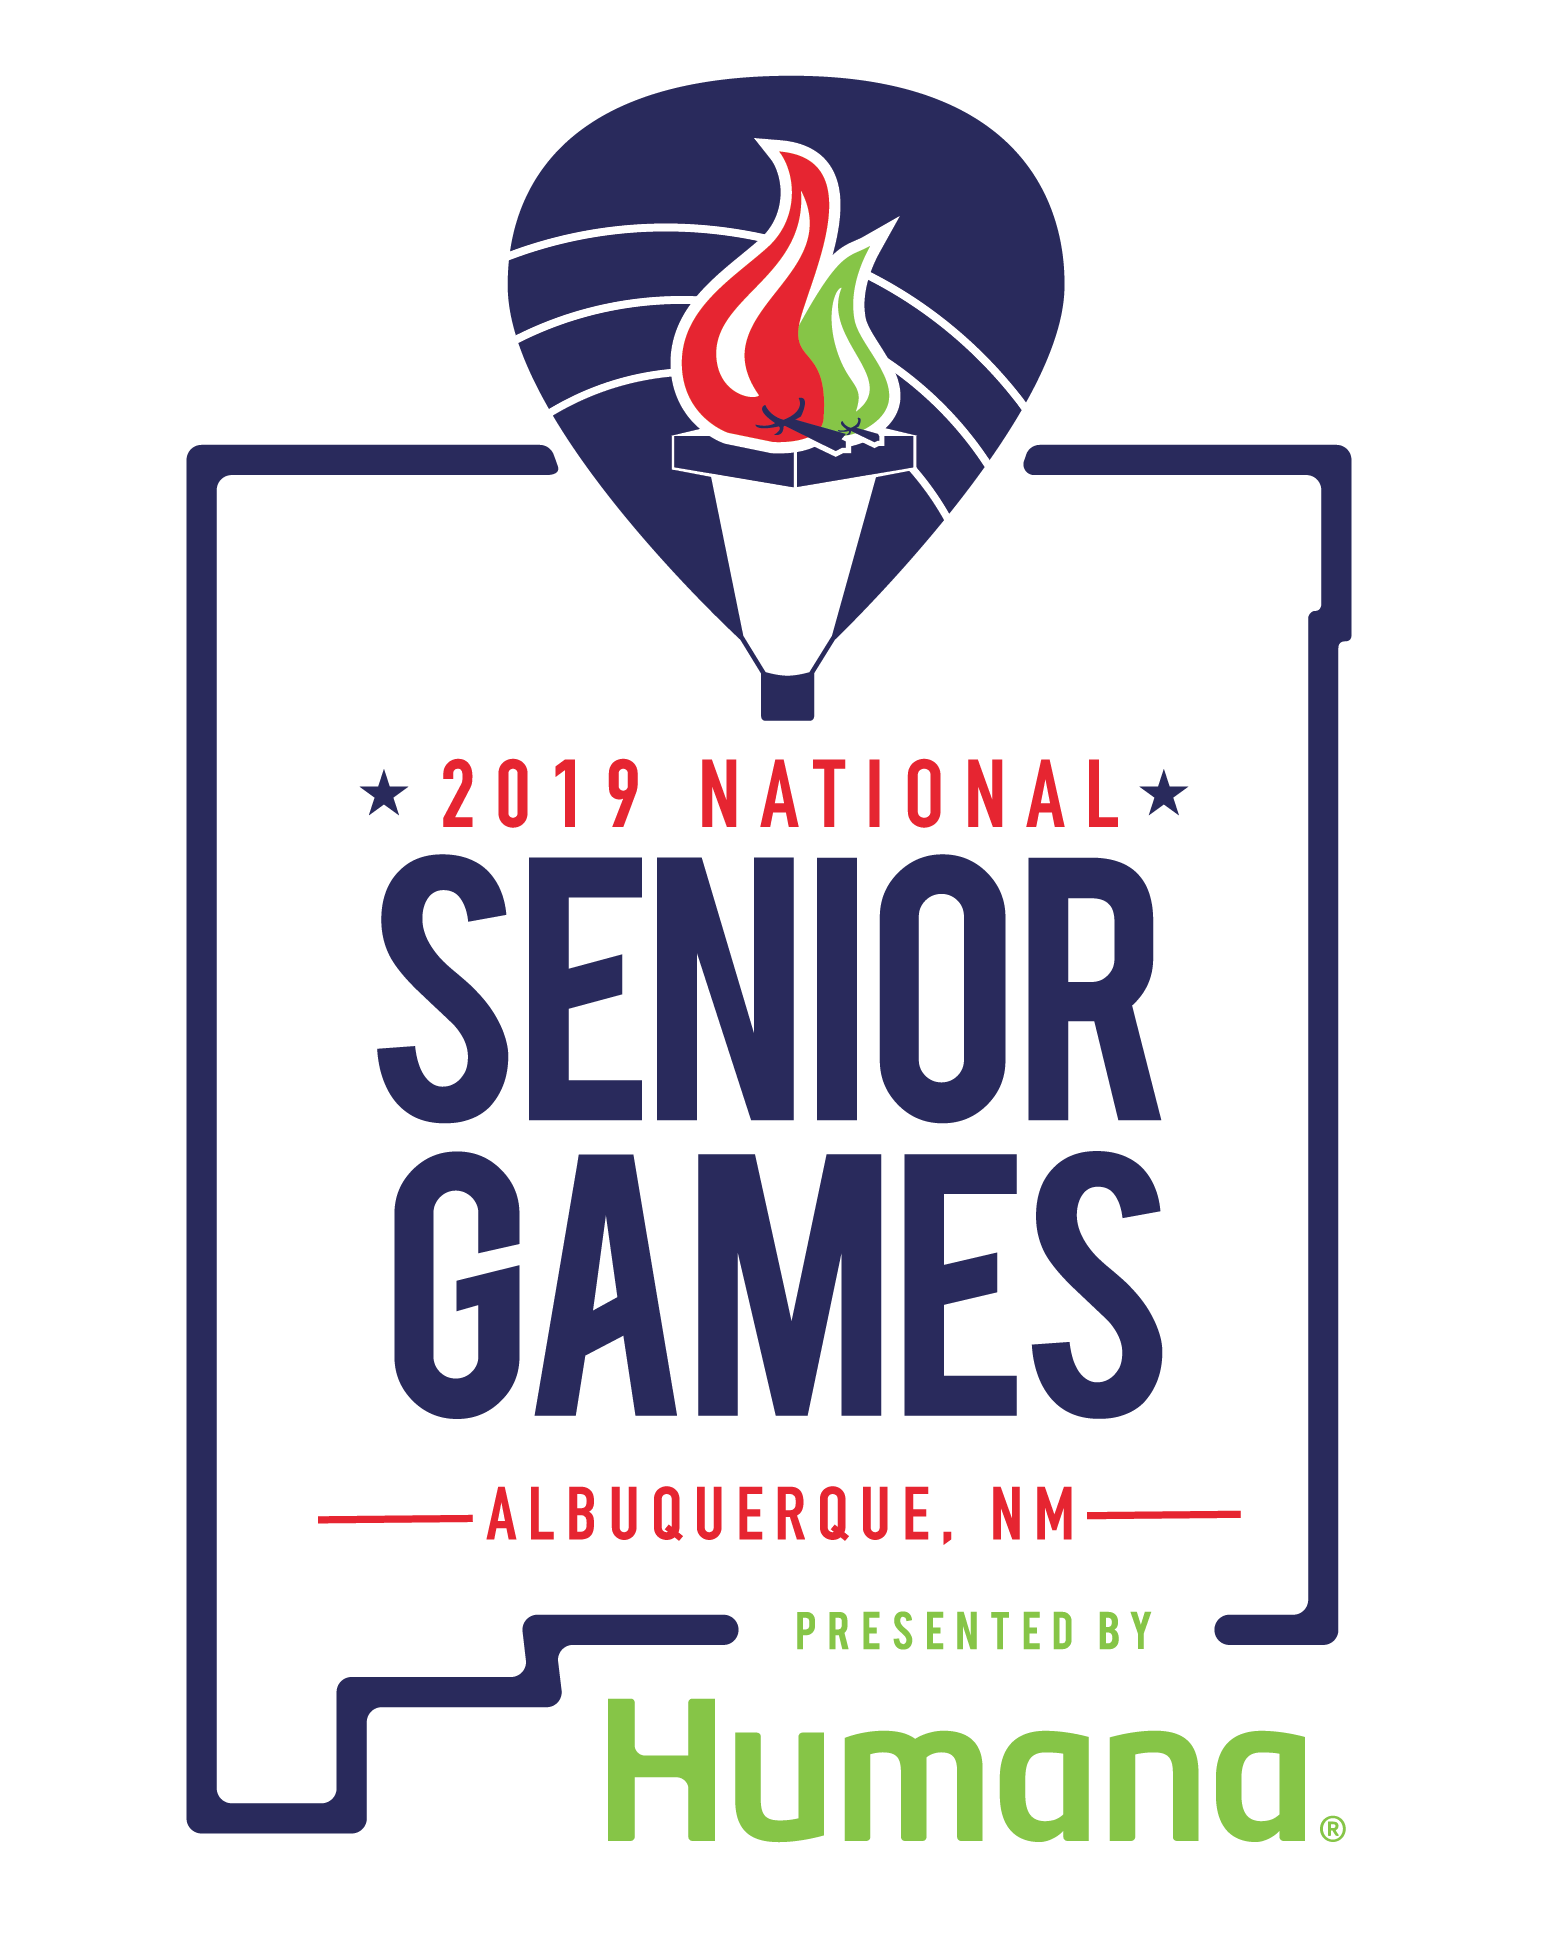 National Senior Games 2019